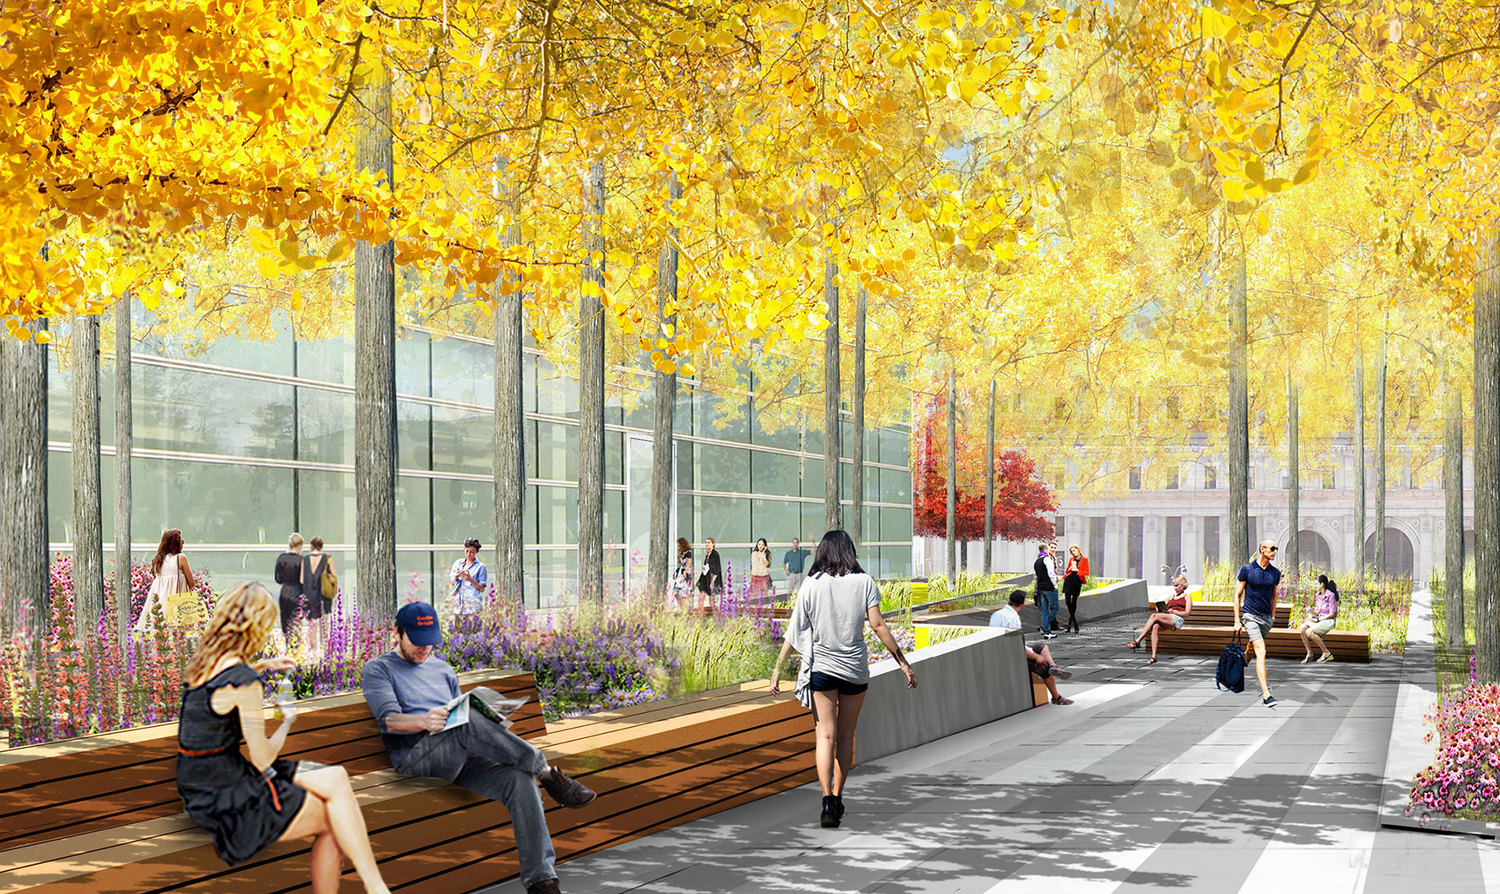 Perhaps the project's most notable highlight is a 60,000-square-foot, landscaped public square designed by James Corner Field Operations—the creative firm behind the nearby High Line.